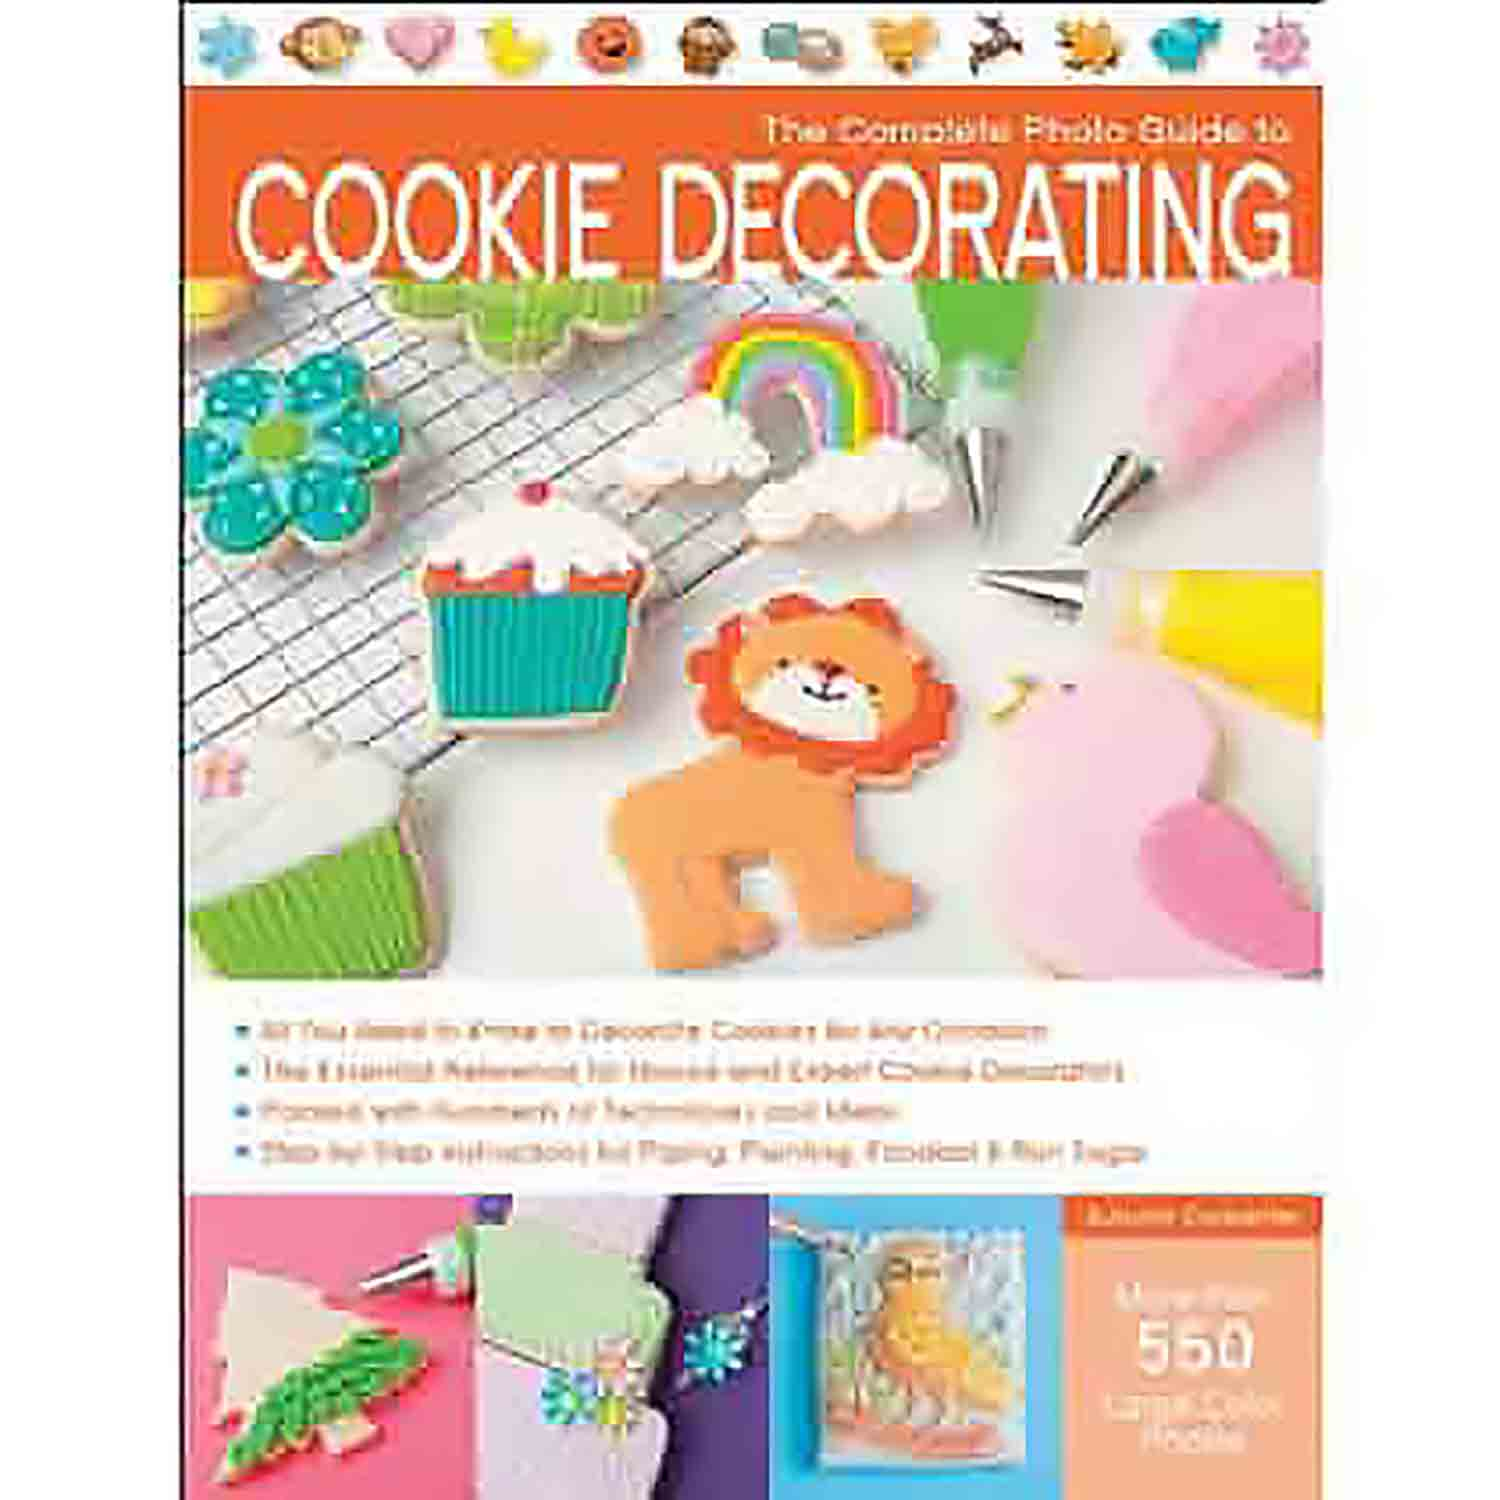 Carpenter - The Complete Photo Guide to Cookie Decorating Book